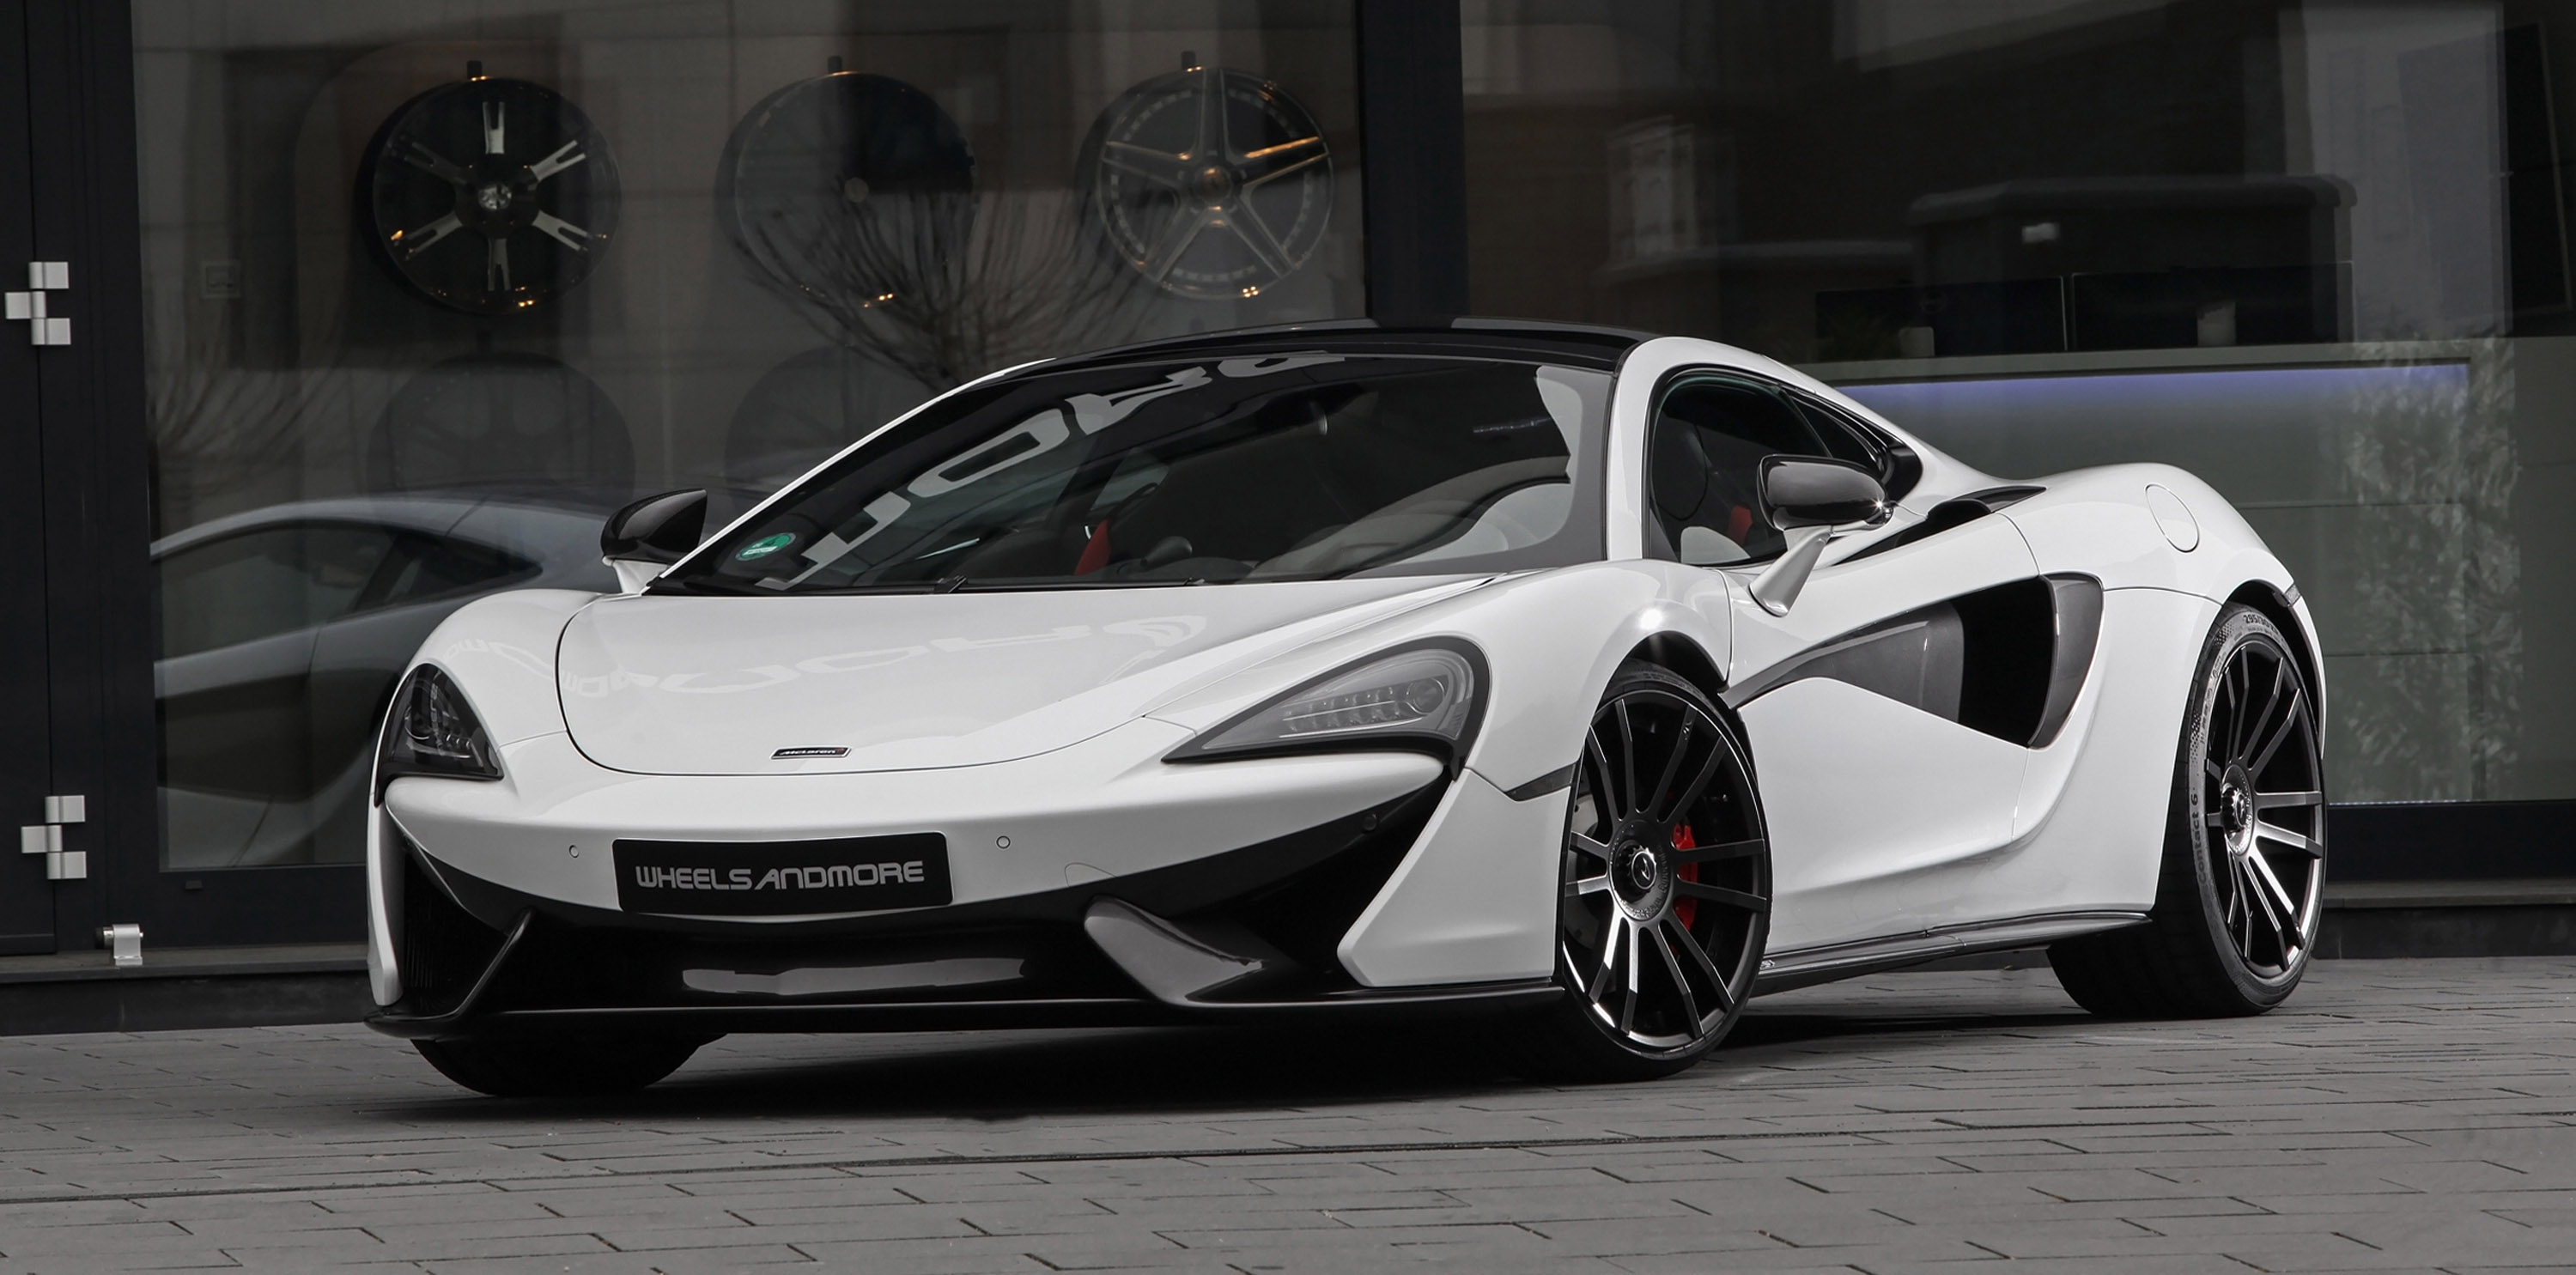 Mclaren P1 Cost >> Wheelsandmore presents the McLaren HORNESSE